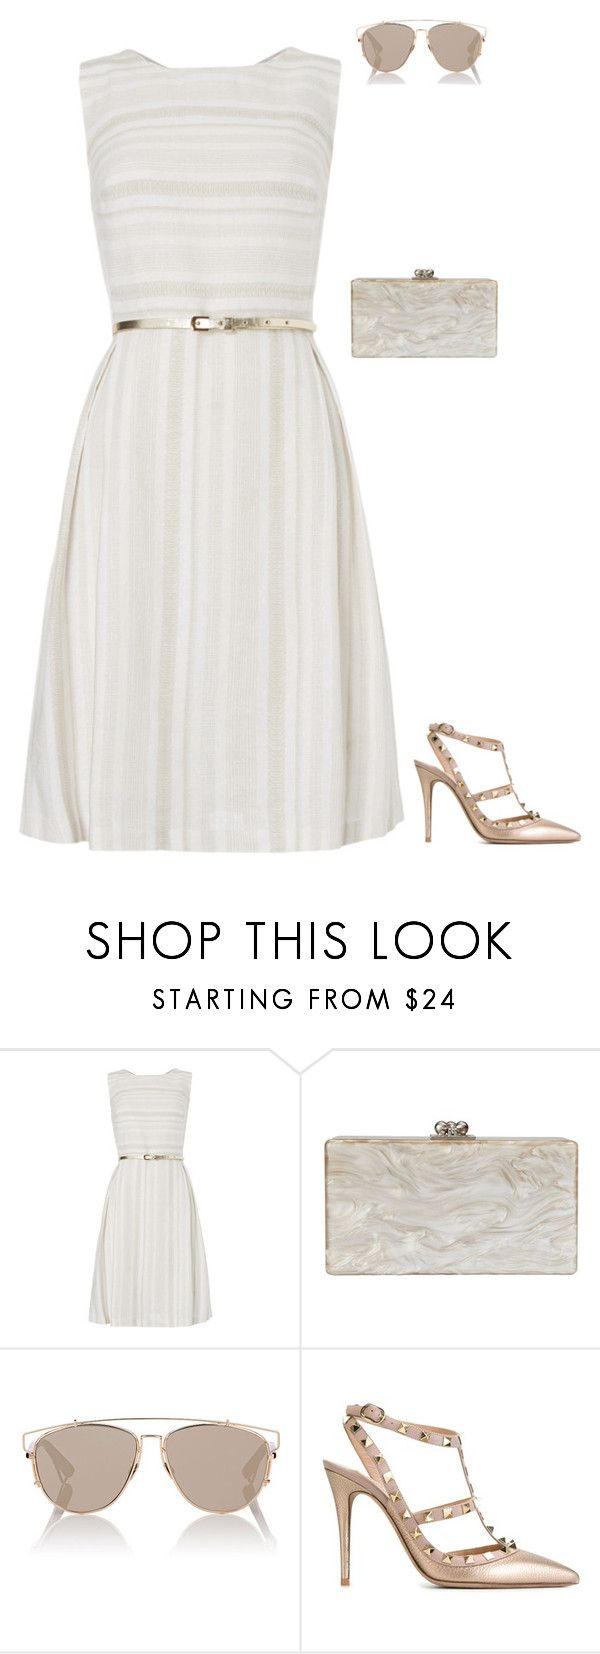 """""""Untitled #1614"""" by jessie-hatton3 ❤ liked on Polyvore featuring Edie Parker, Christian Dior and Valentino"""